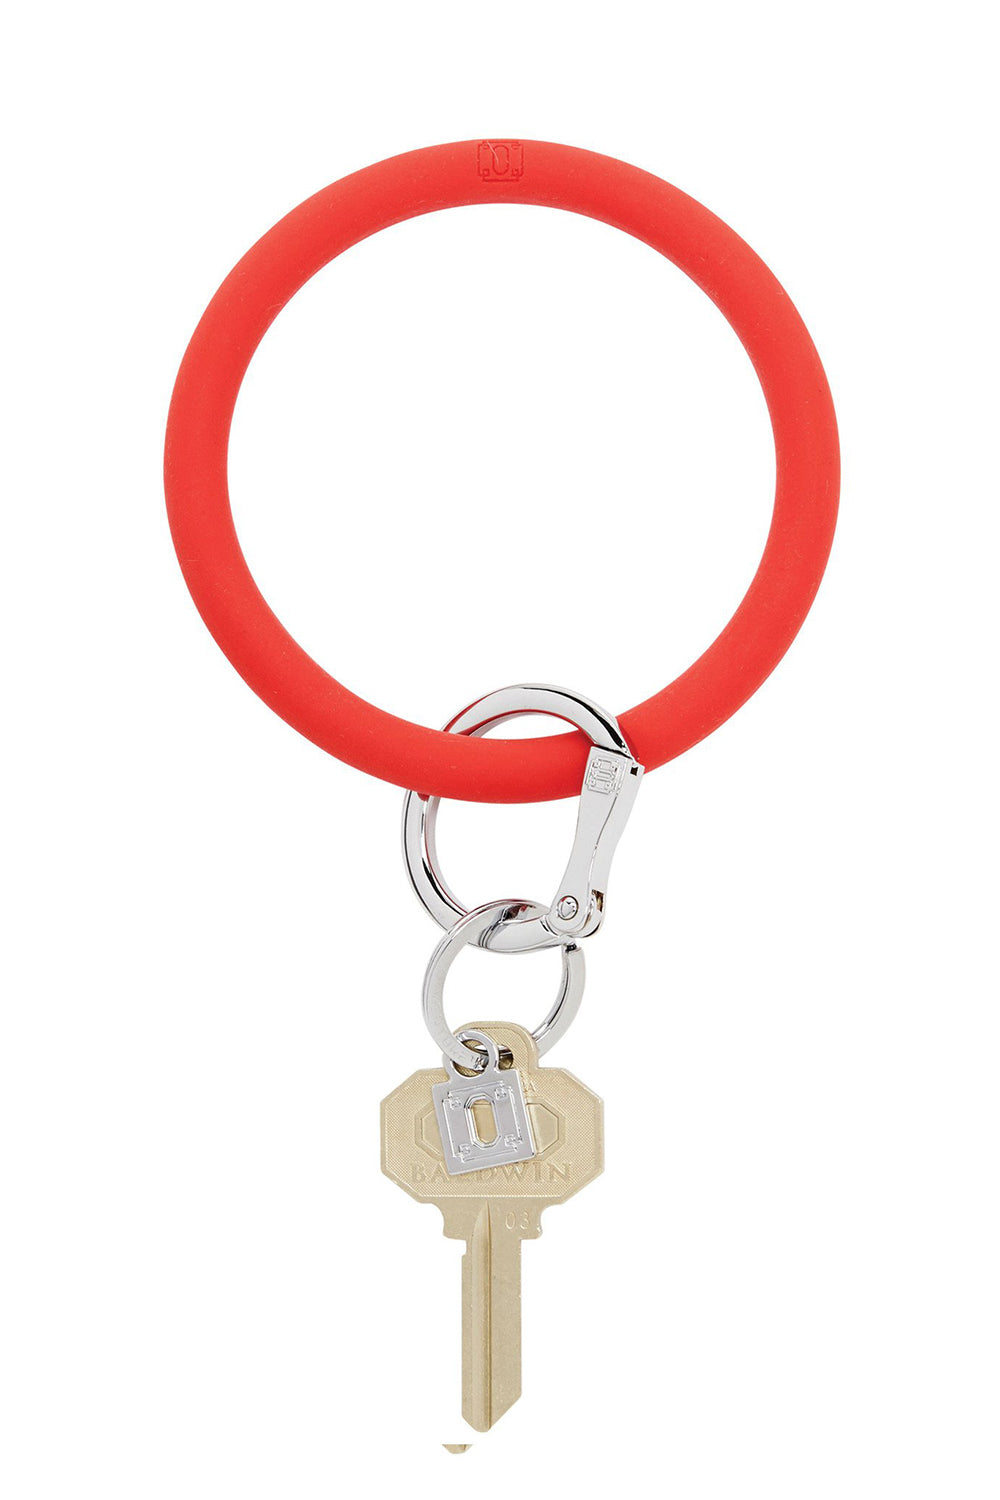 The BIG O Key Ring *Silicone* - Cherry on Top Red